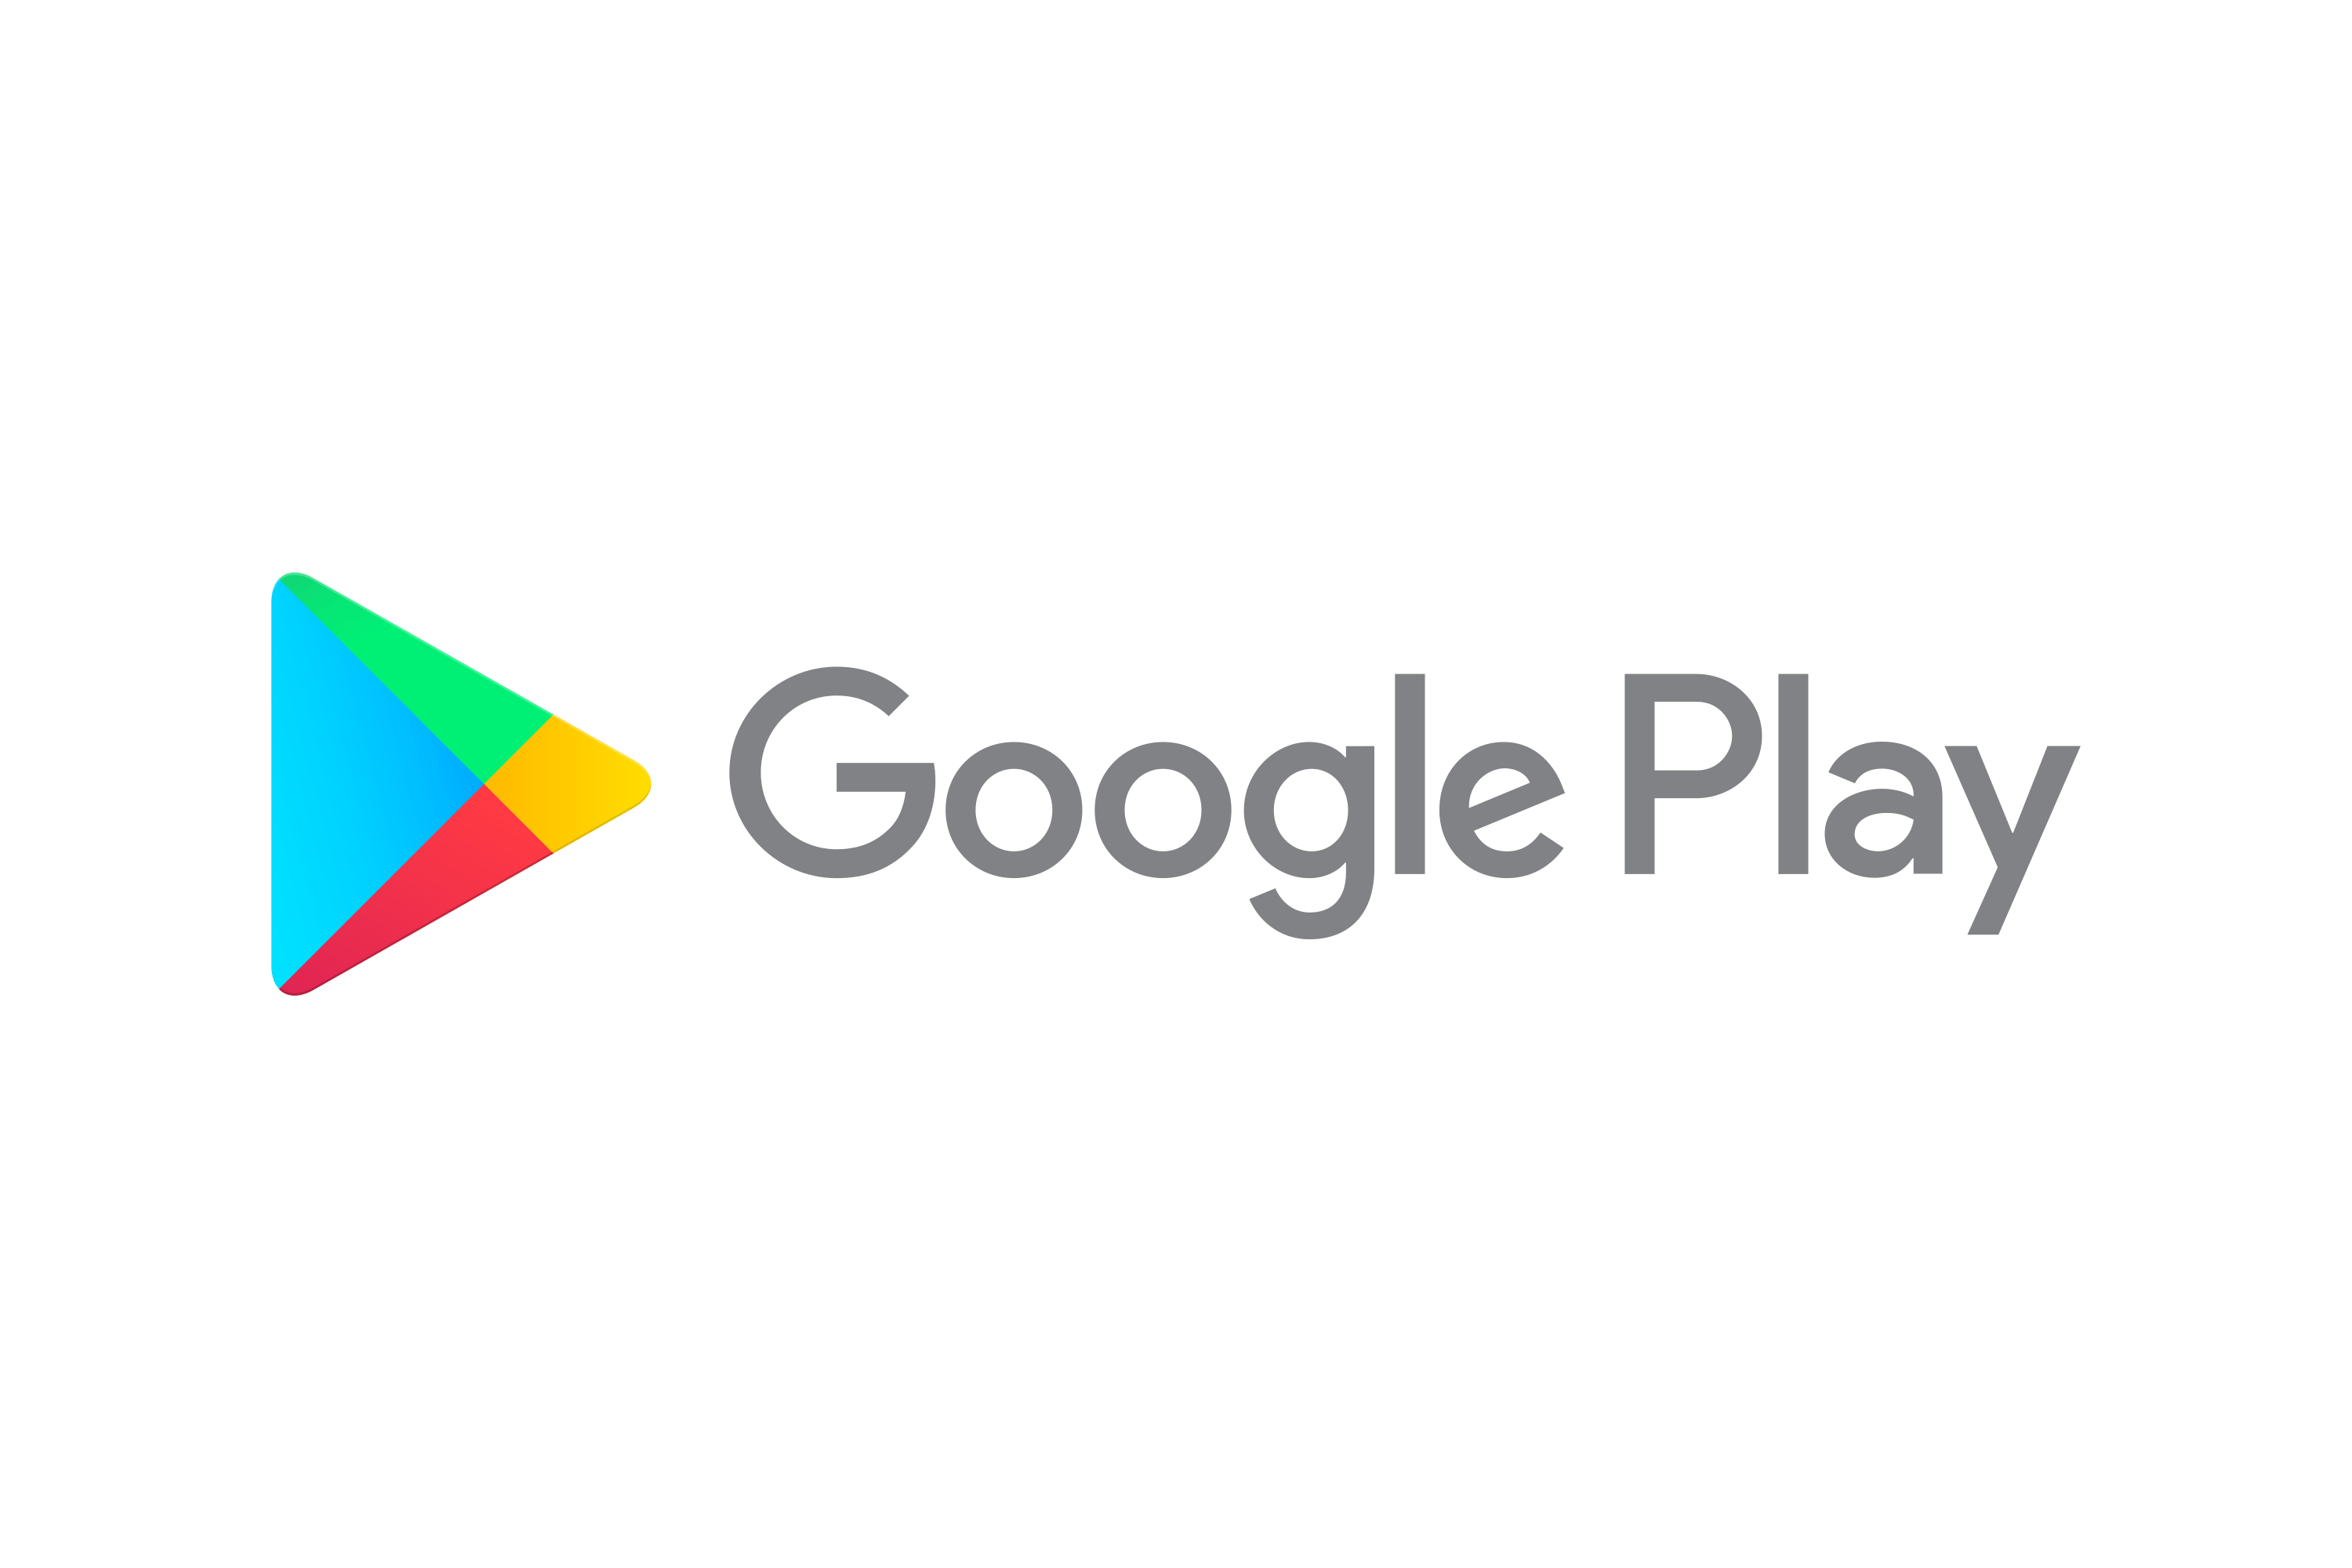 Download Google Play (Android Market) Logo in SVG Vector ...